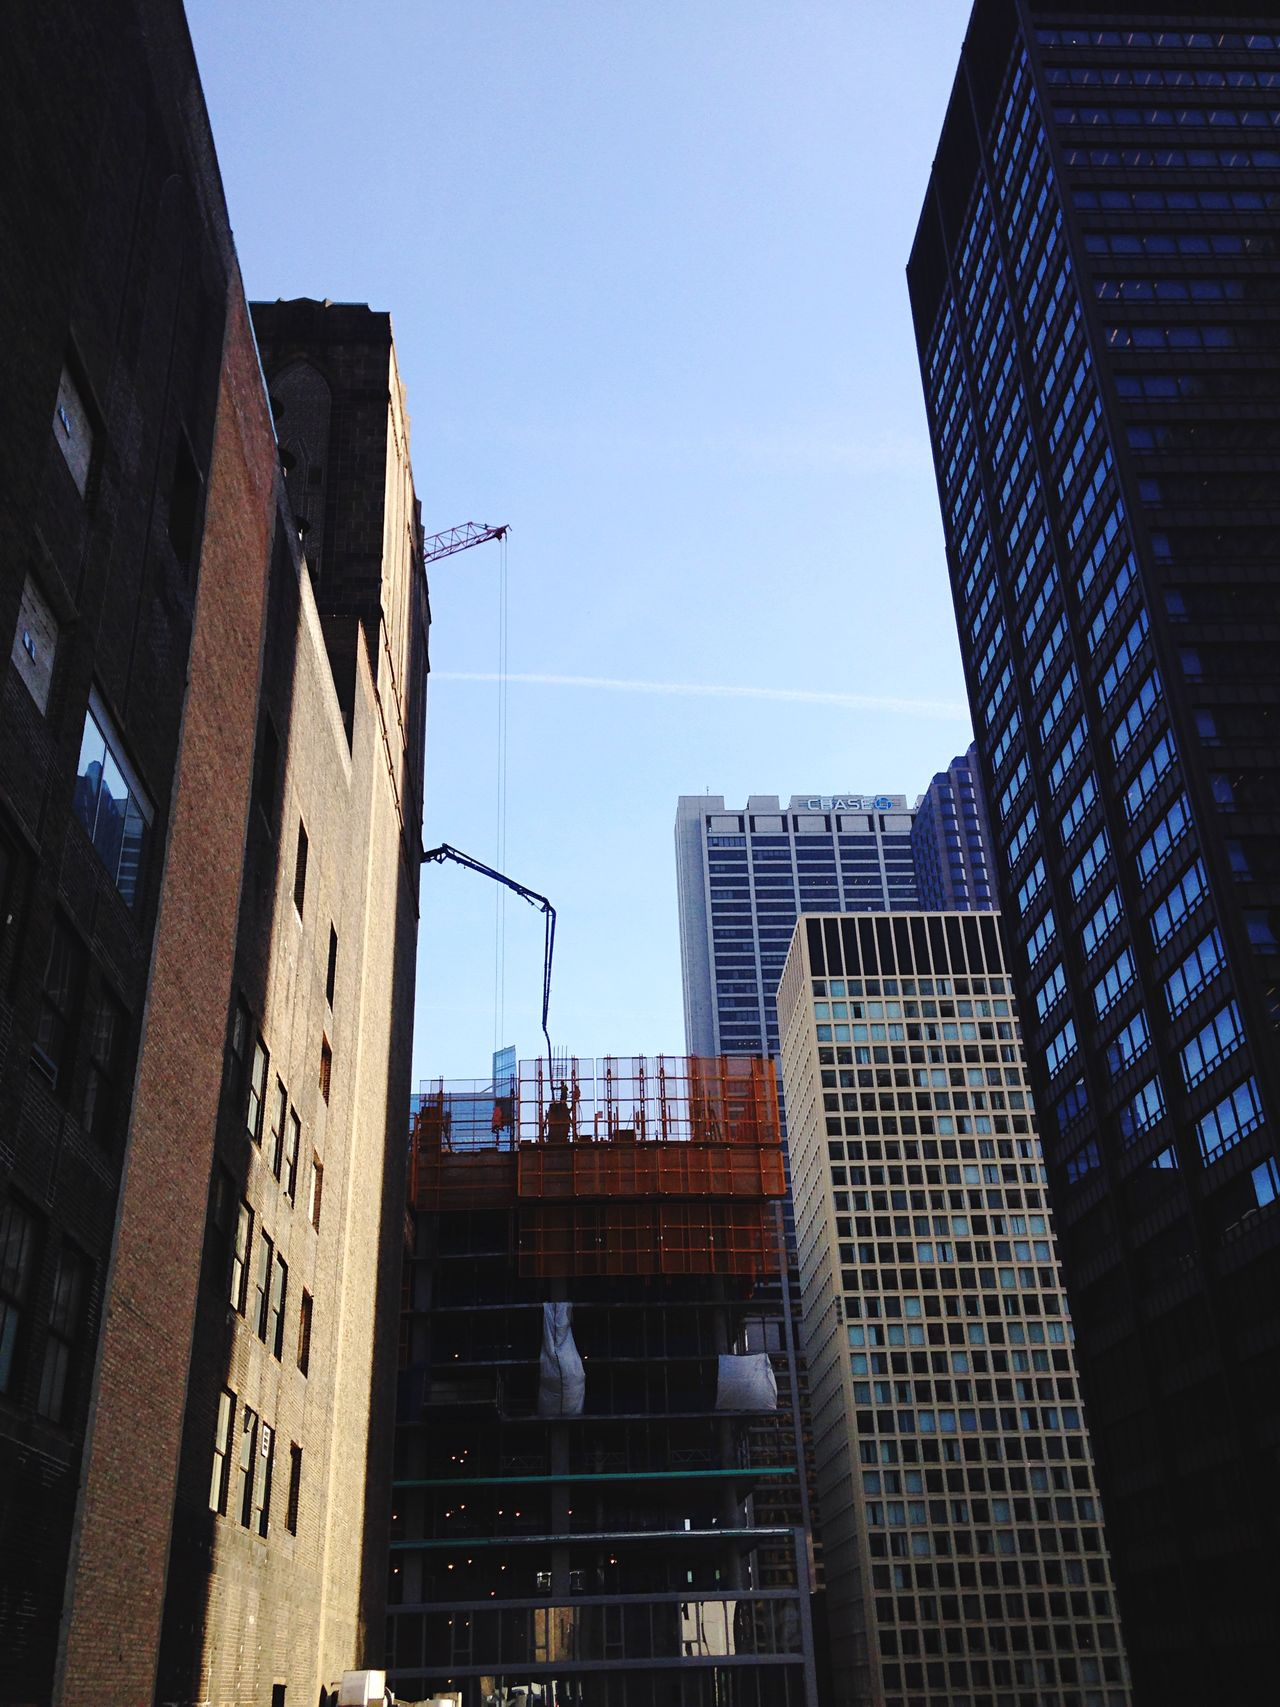 Looking Into The Future Old Brickwork New Construction Crane Sky Scrape Chicago Old Vs New IPhoneography